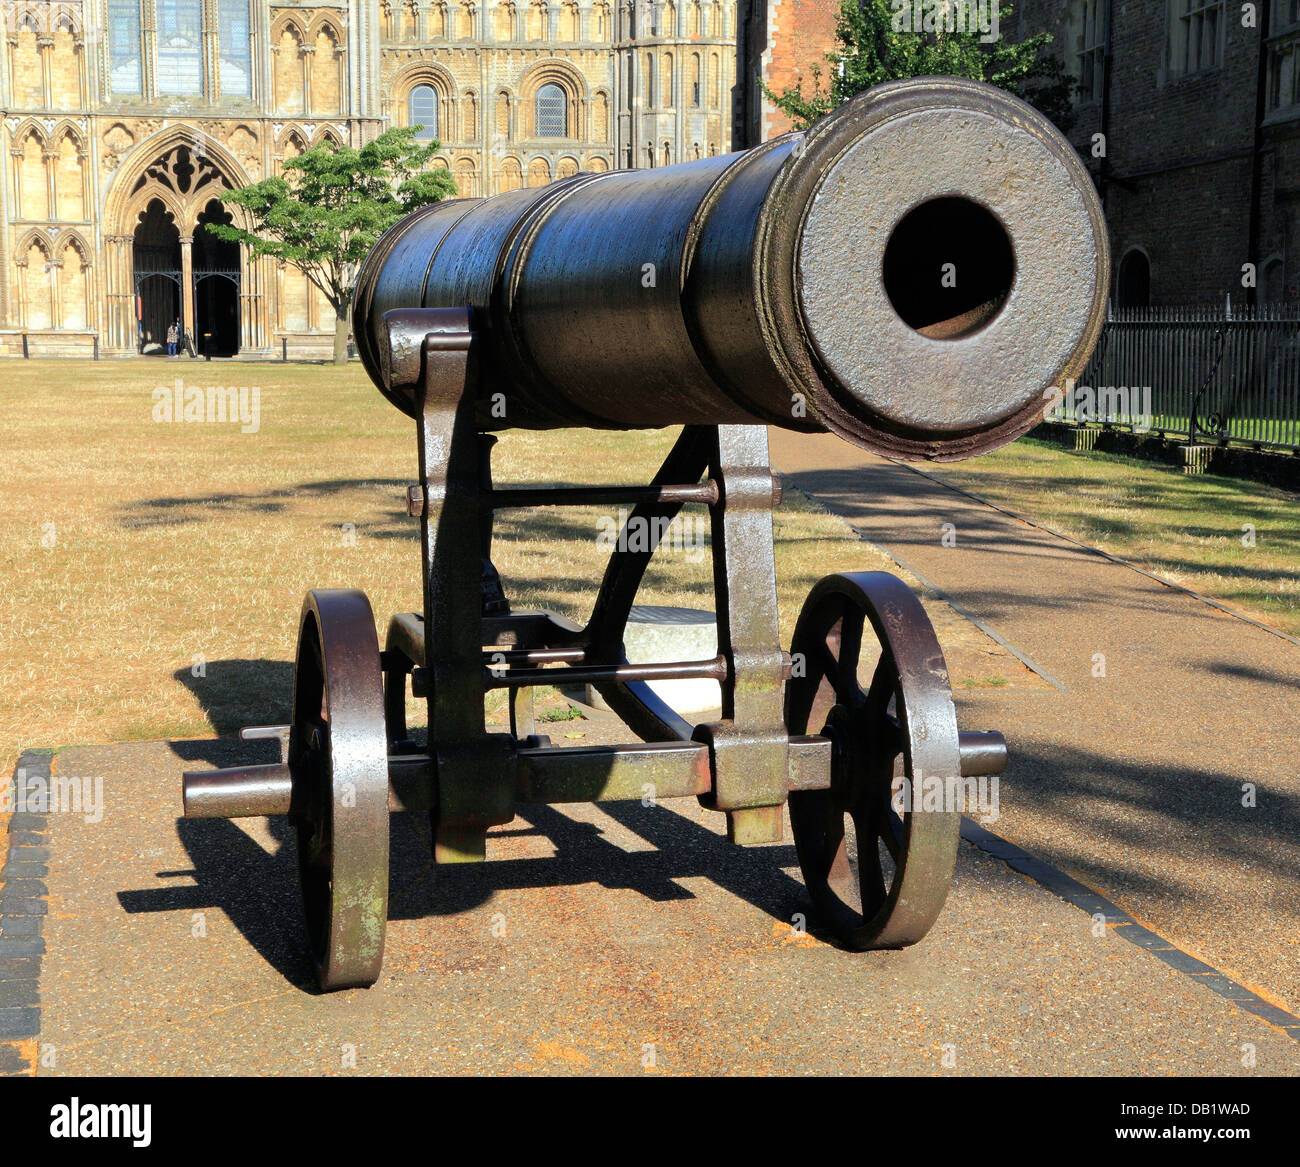 Ely, Russian Crimean War Cannon, Cambridgeshire England UK, Palace Green - Stock Image